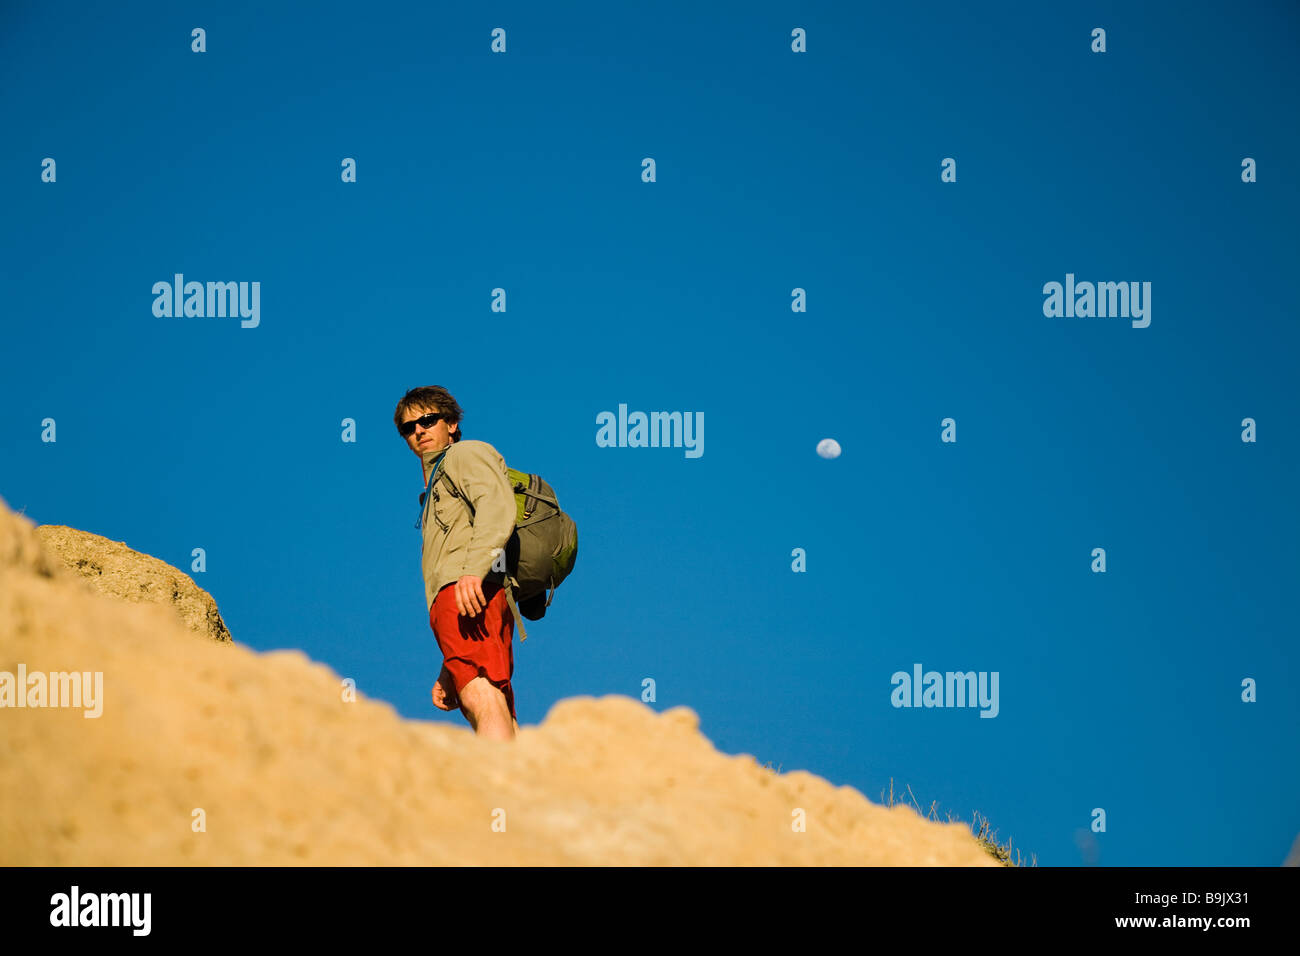 A portrait of a young man standing on a rock with a bright blue sky behind in Channel Islands National Park, California. - Stock Image